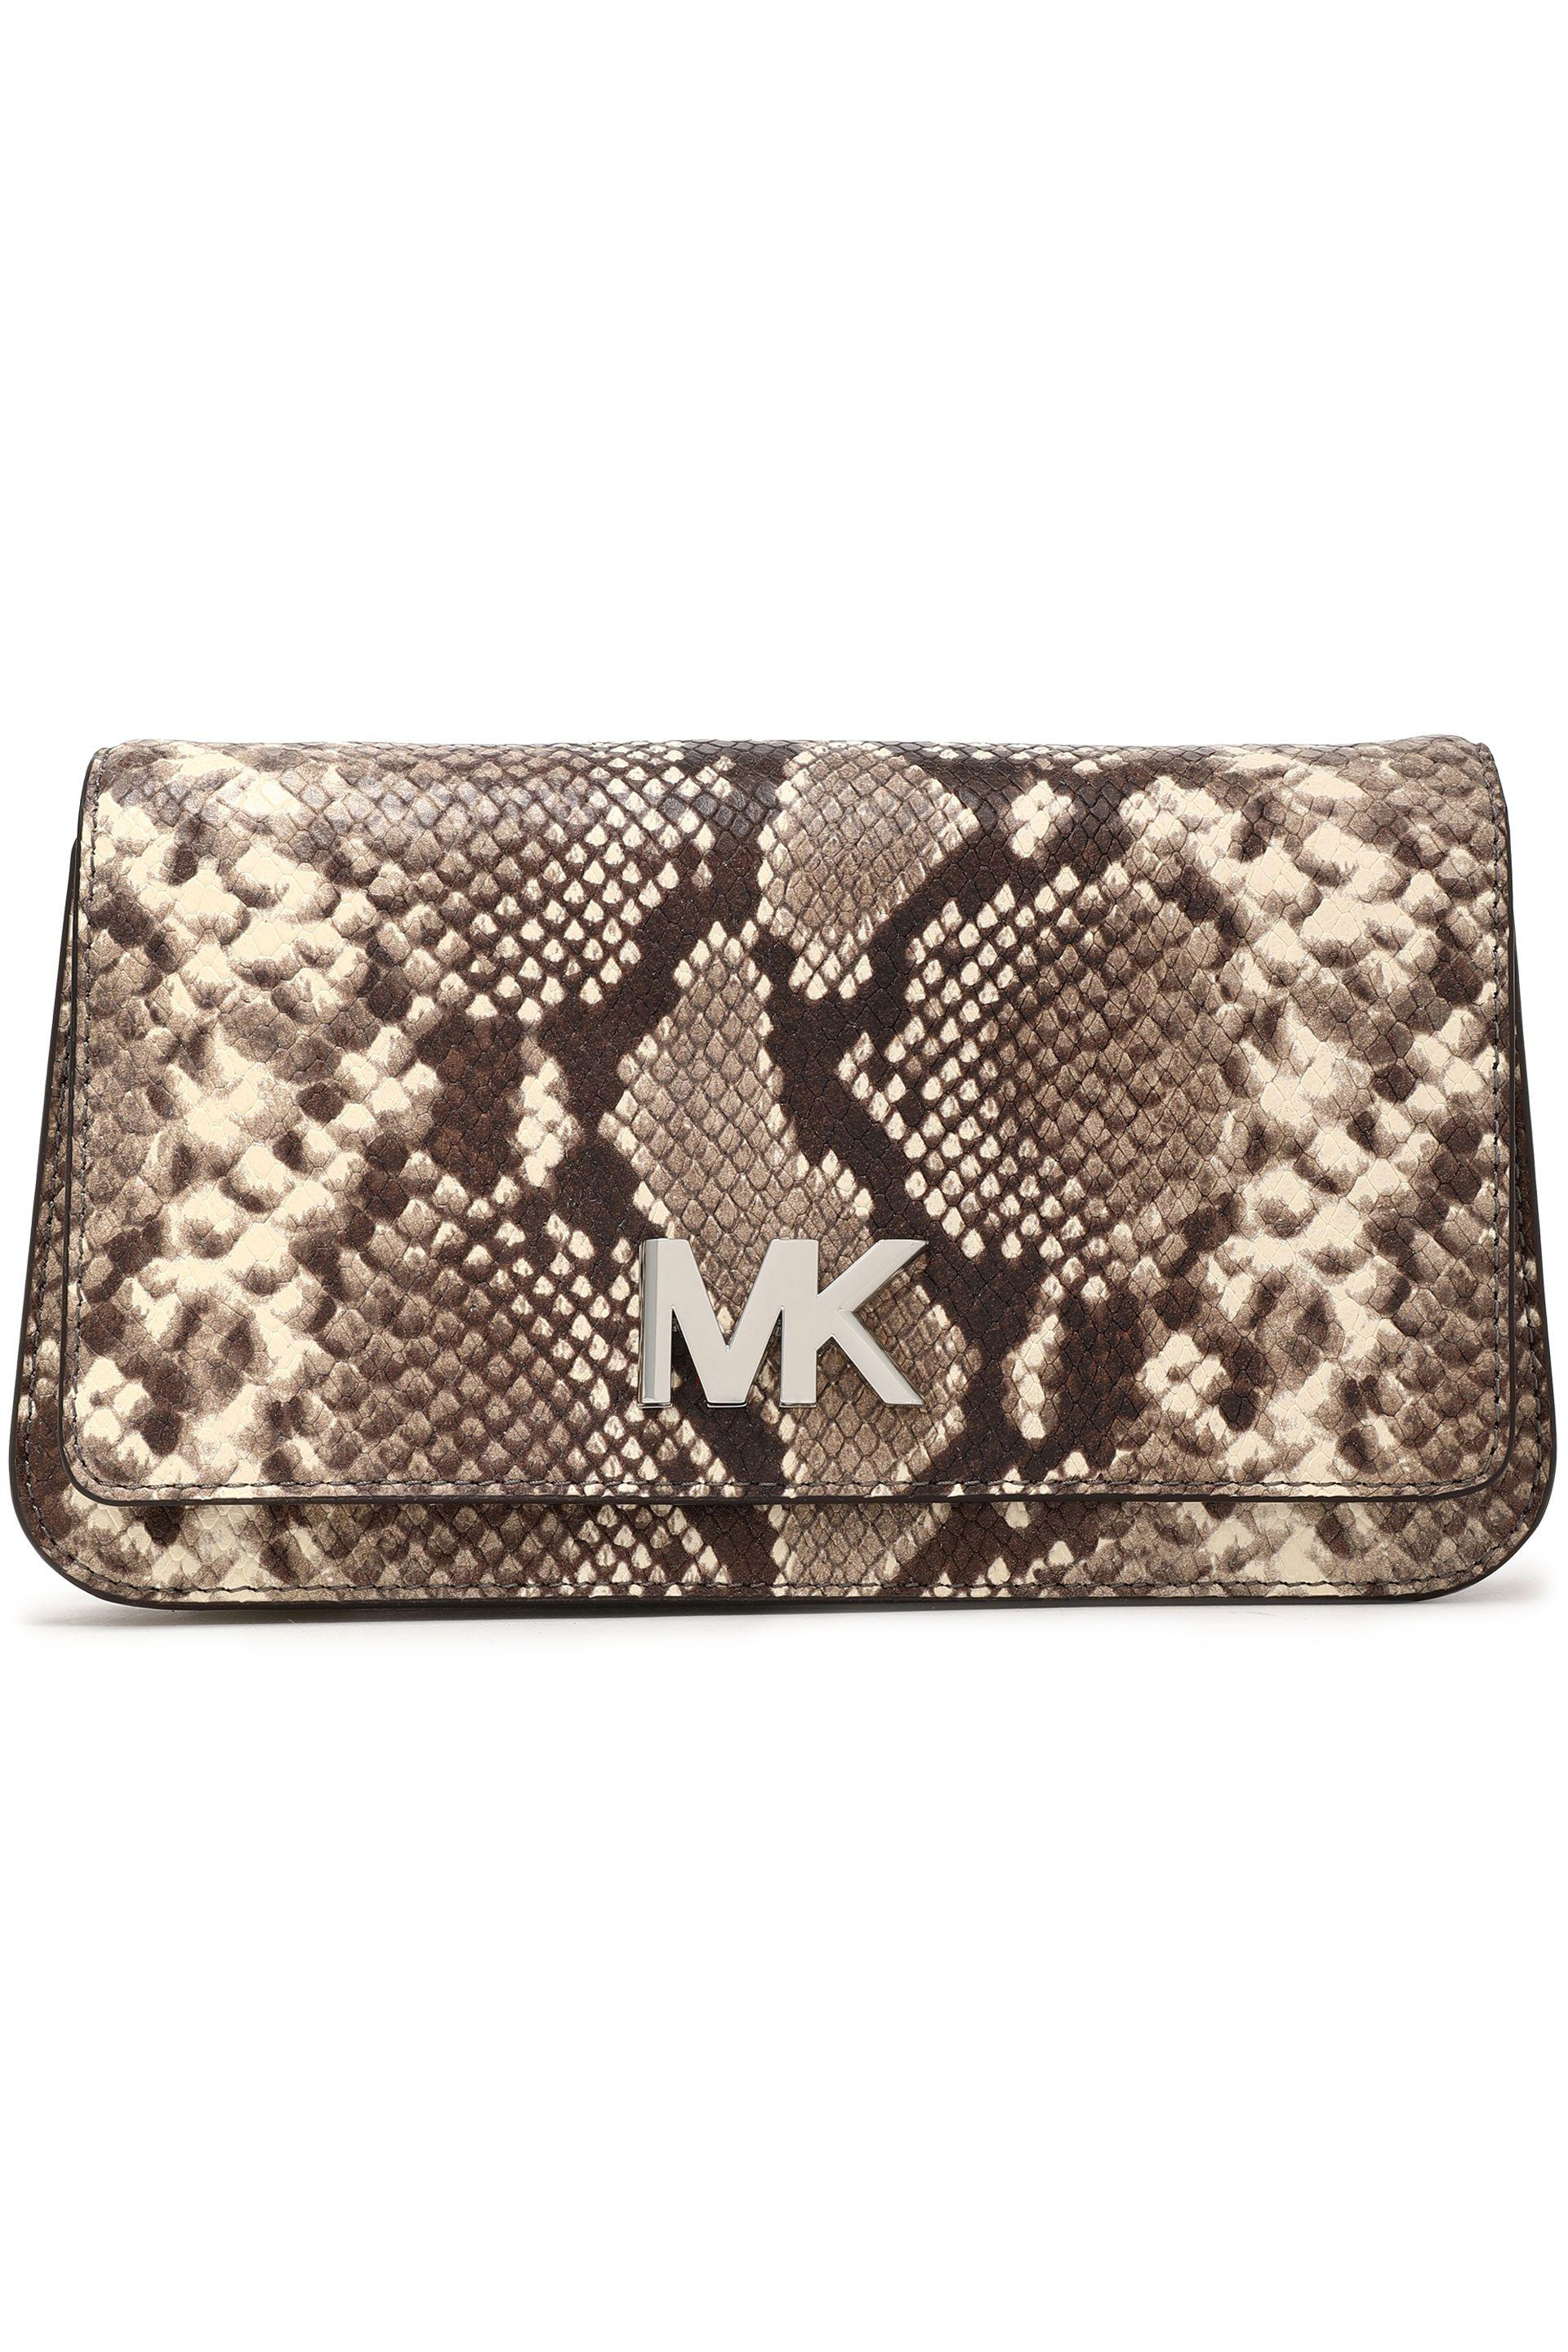 Michael Michael Kors Woman Snake-effect Leather Clutch Animal Print Size Michael Kors SngT2